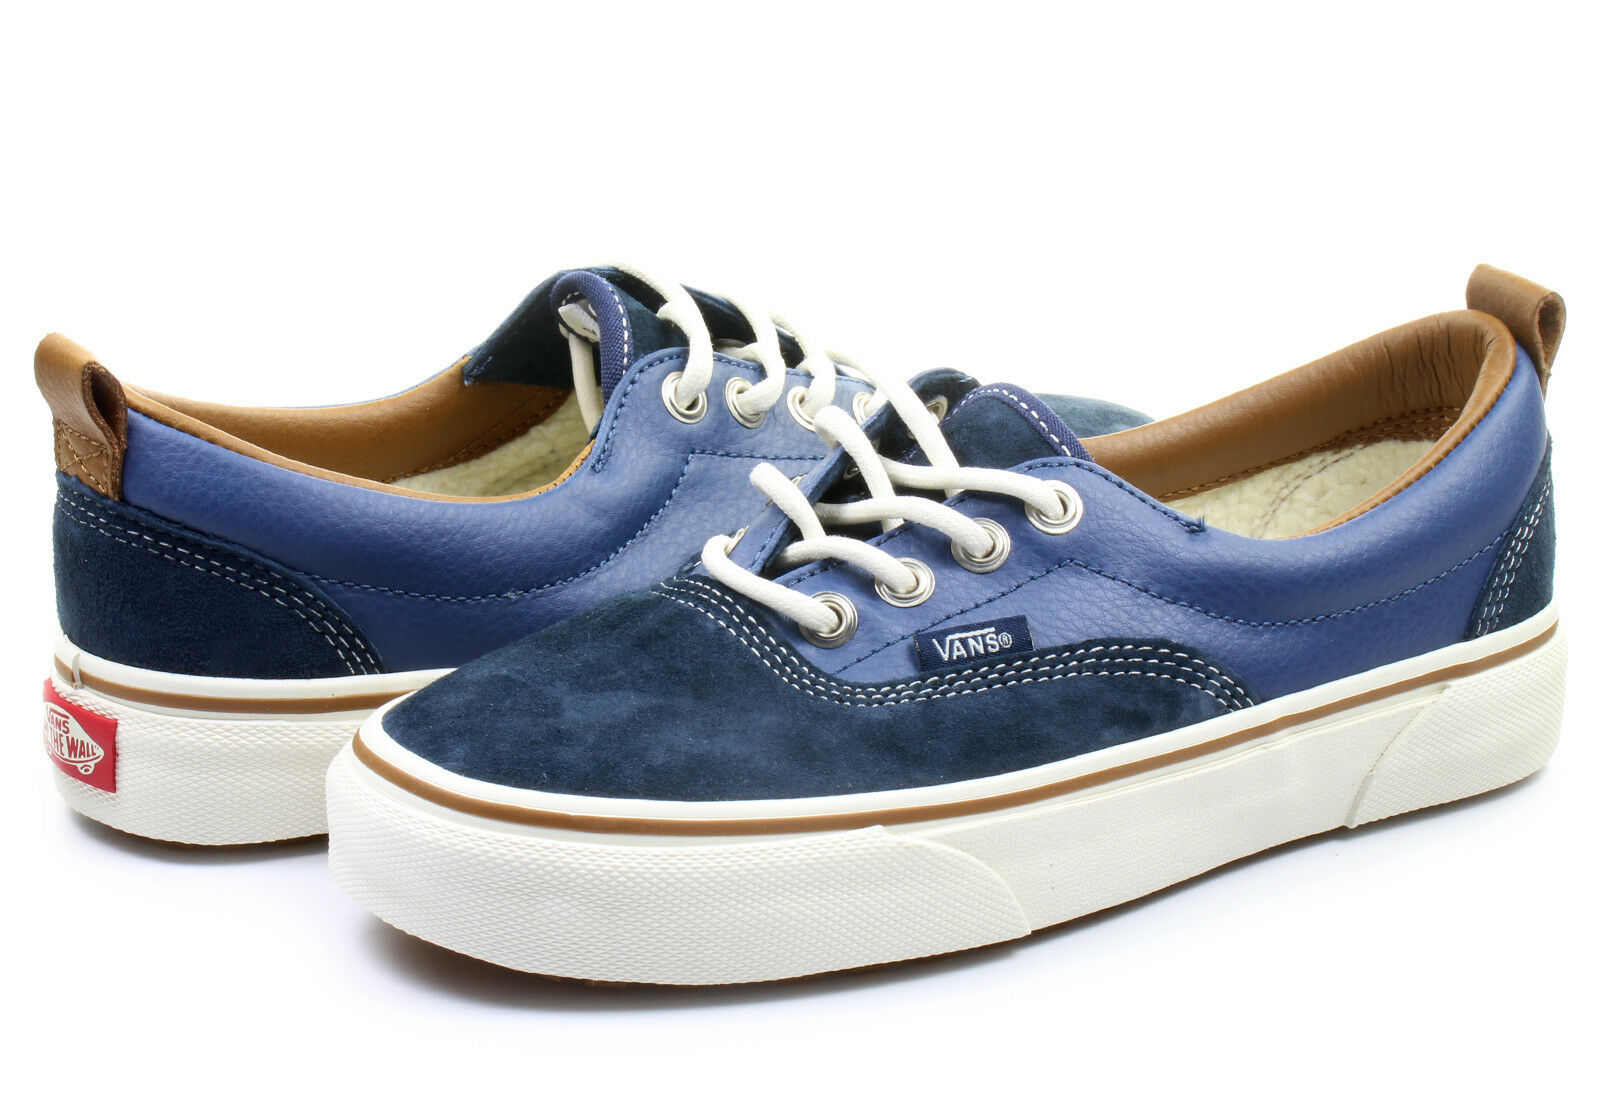 28146a4289e38e Vans Authentic Era Mte Classic Sneakers Canvas Women Men Of The Wall ...